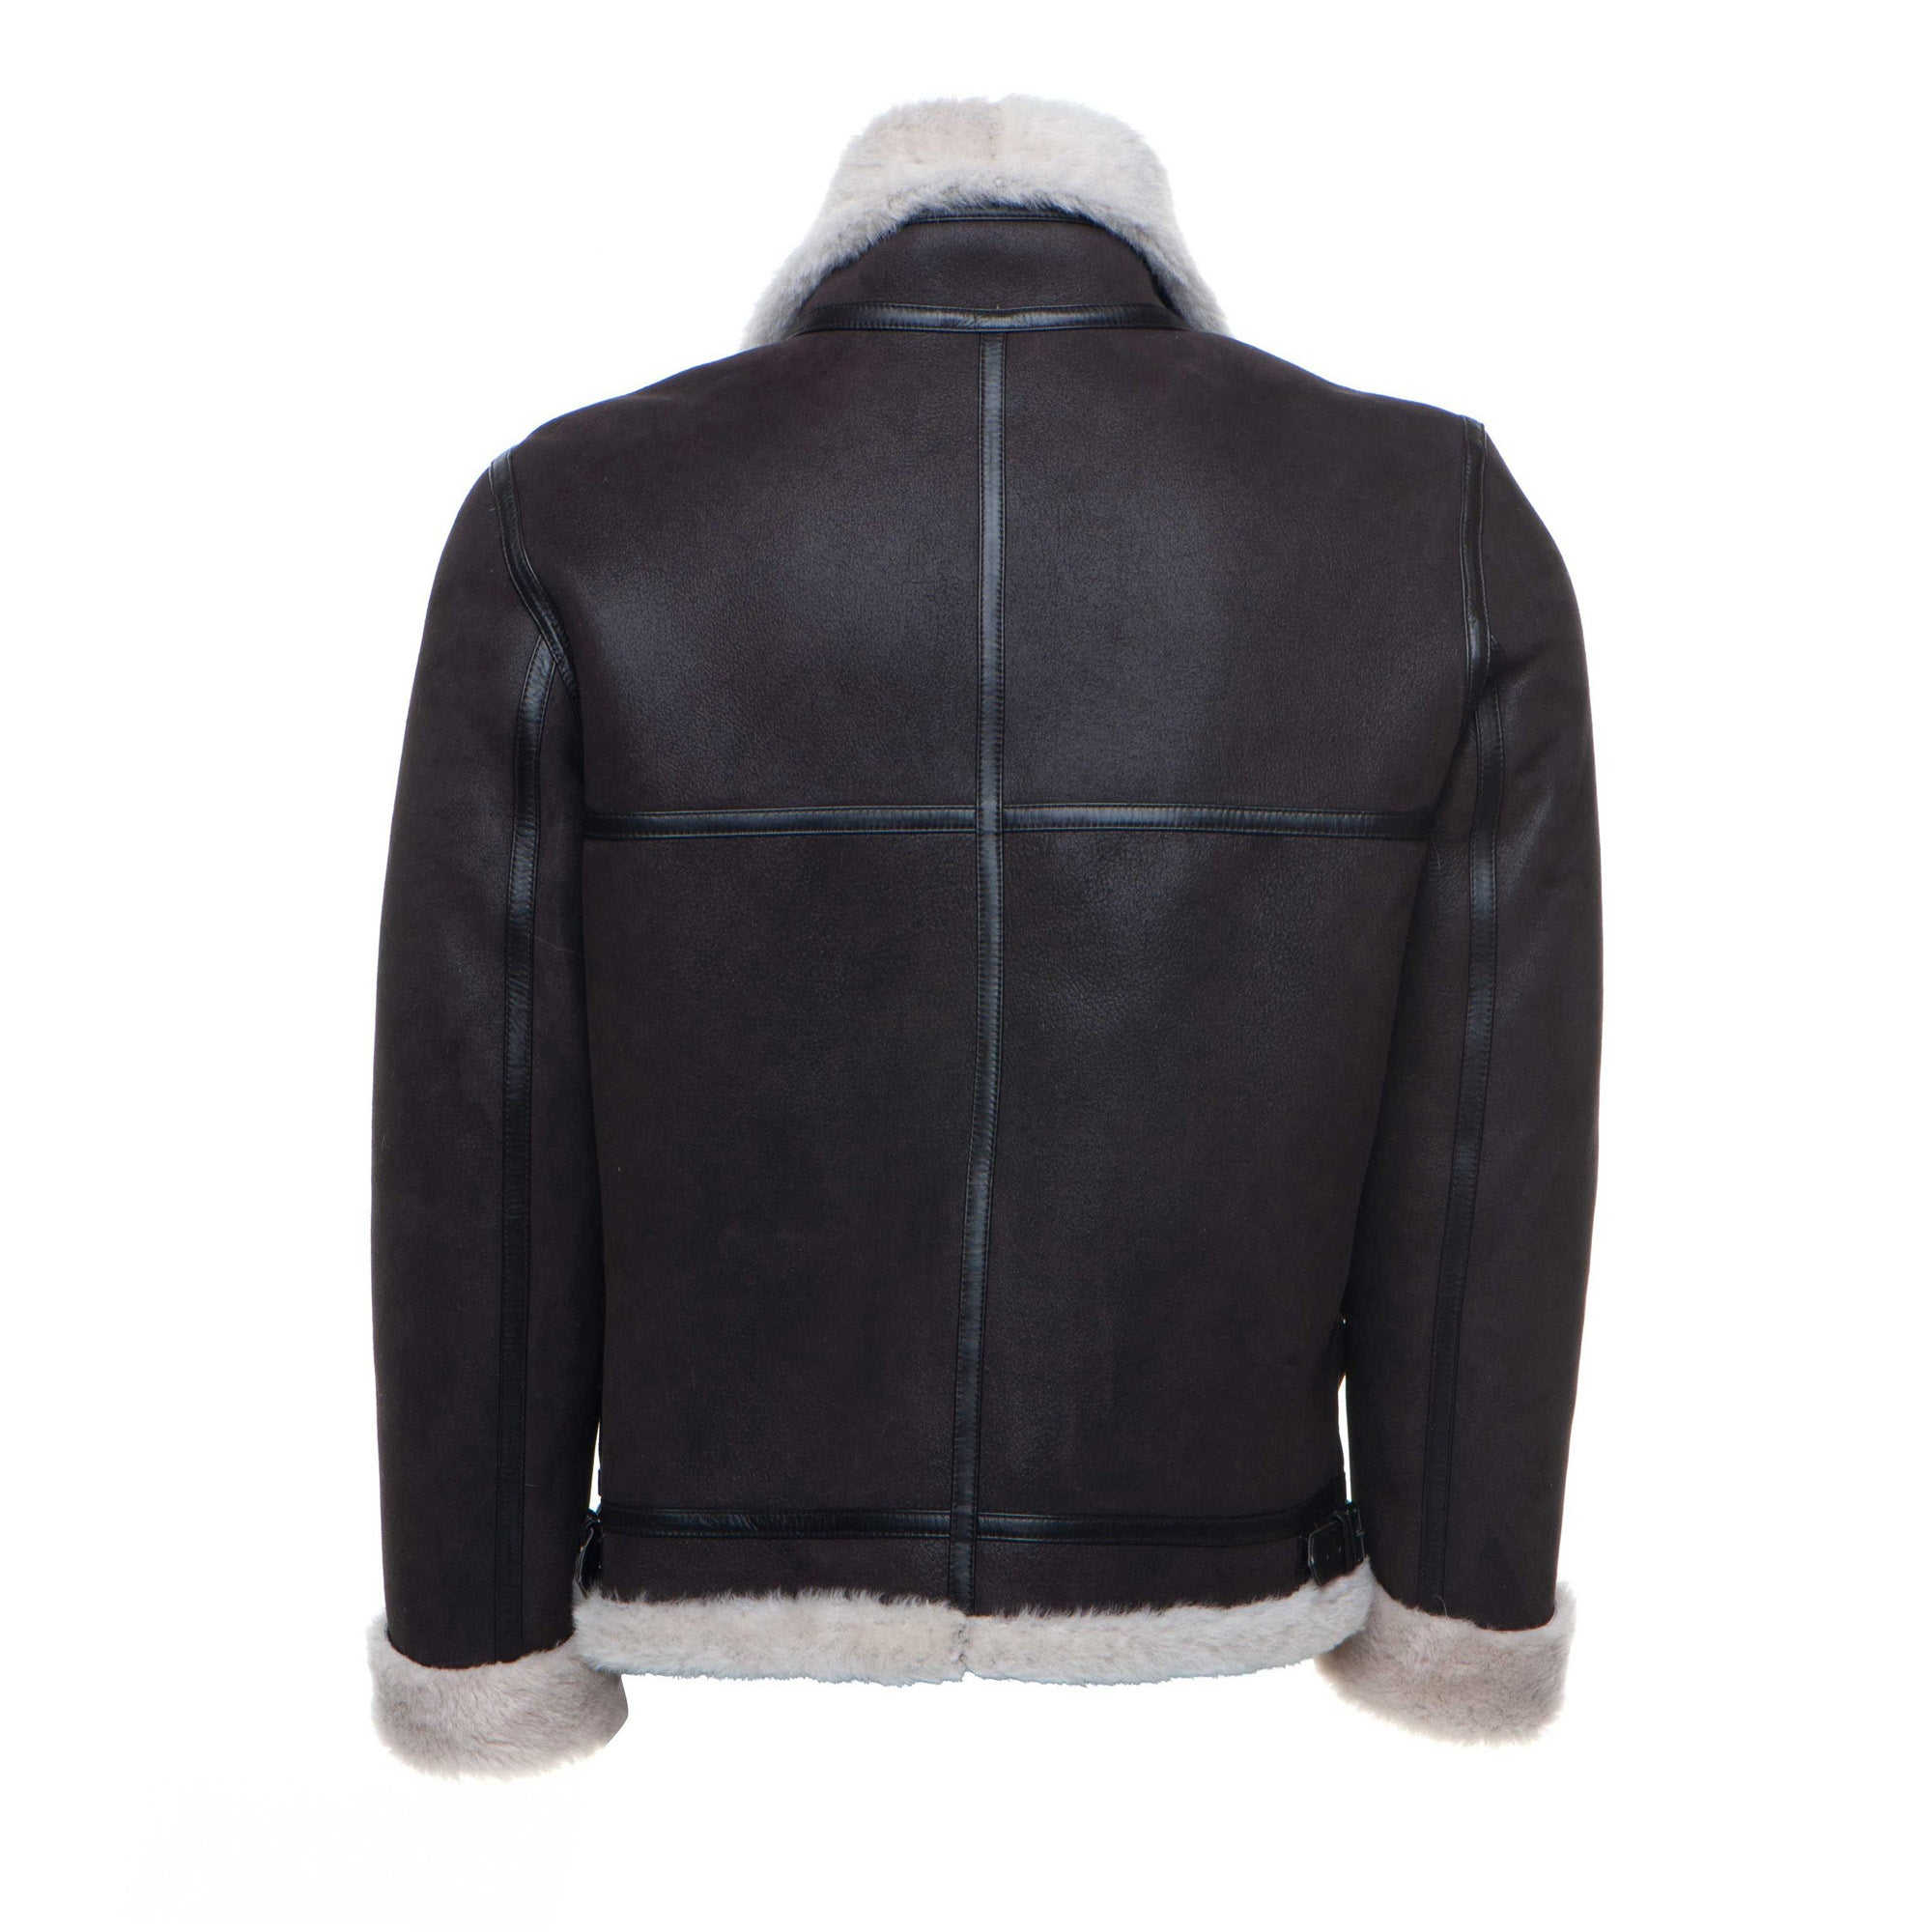 Hampton's Classic Brown Bomber Aviator Shearling Jacket with collar belt